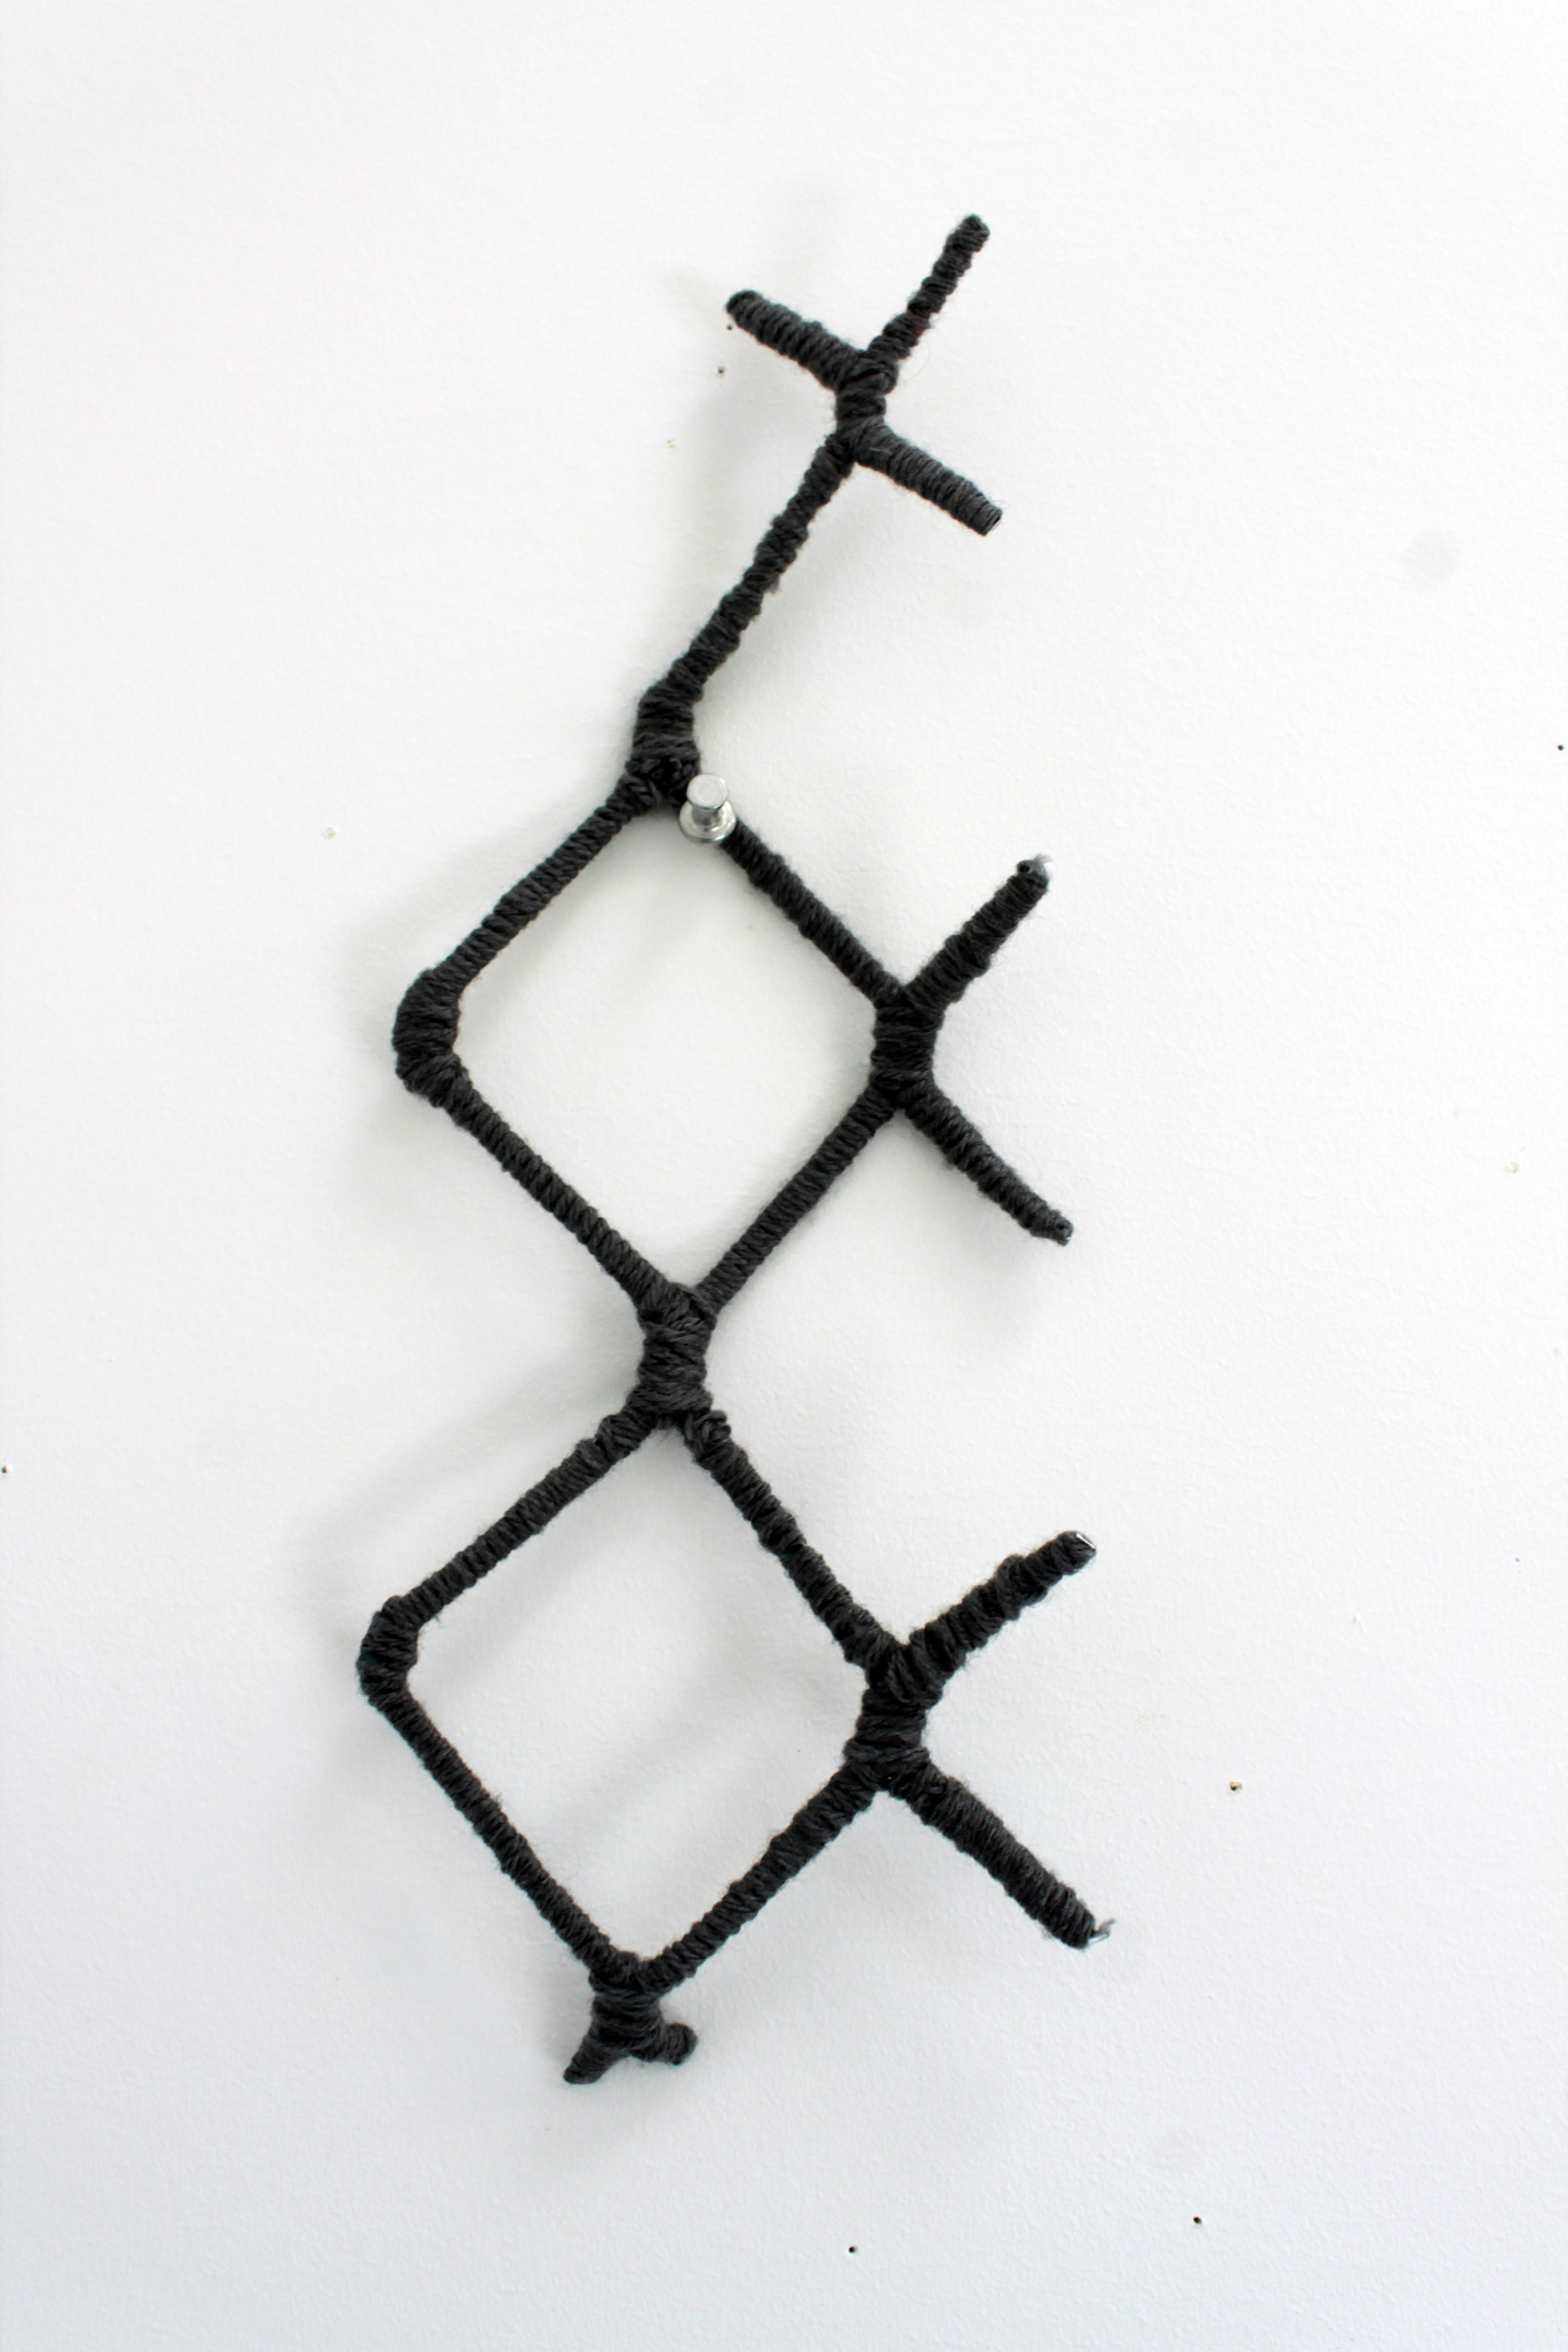 Chain-link 4, fragment, 2014